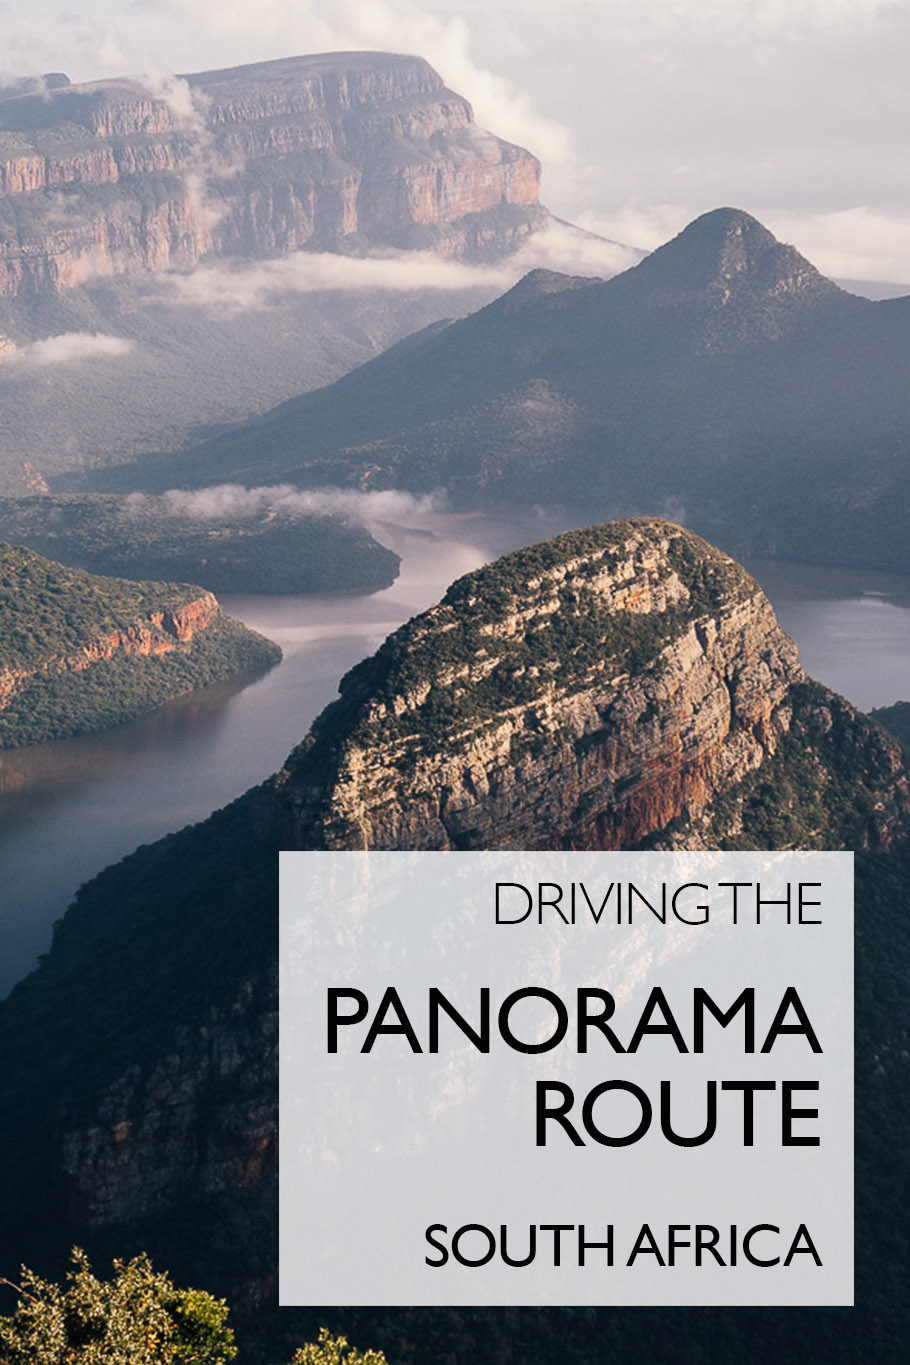 Things To Know Before Driving South Africa's Panorama Route